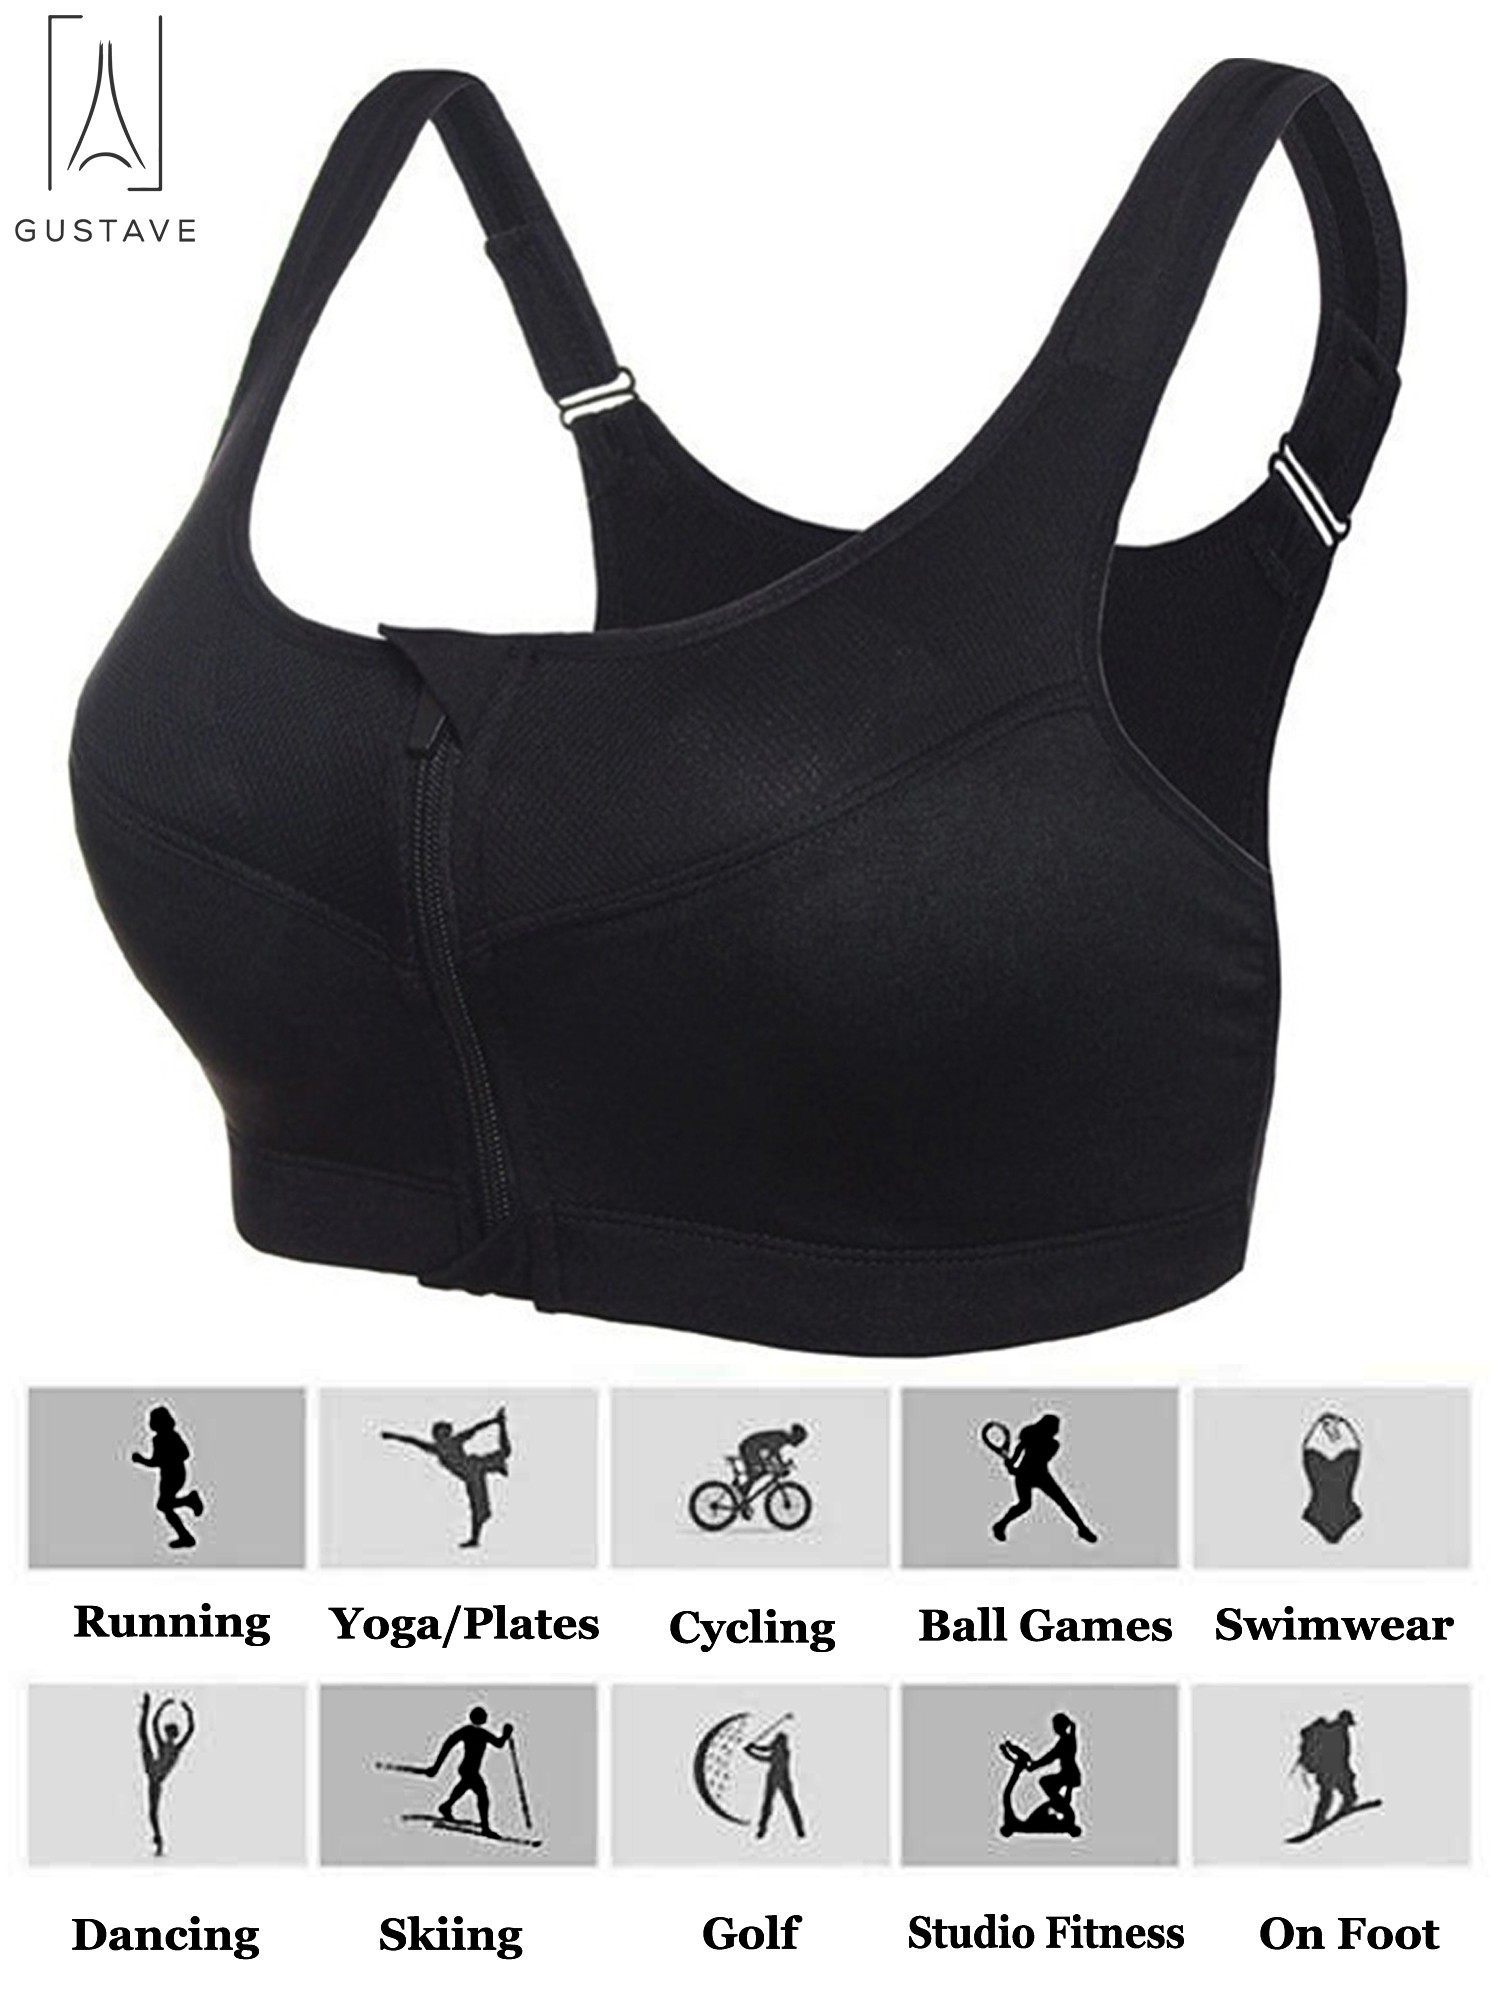 MIKI SHOP Womens Sports Bra Shockproof Padded with Back Pocket Elastic Push Up Running Yoga Bras Gym